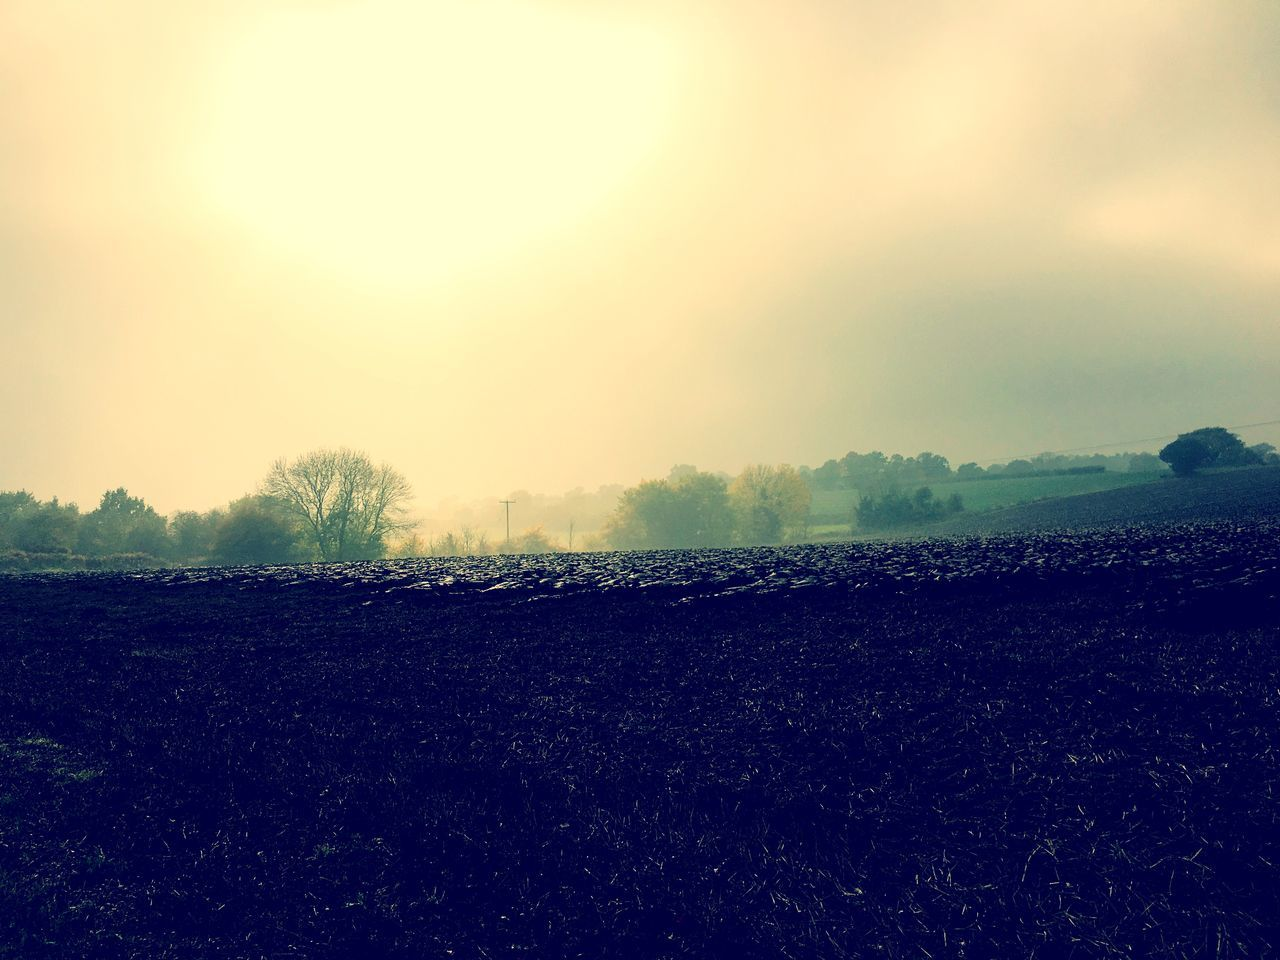 landscape, field, agriculture, tranquility, tranquil scene, nature, beauty in nature, scenics, rural scene, plough, outdoors, no people, sky, tree, day, fog, plowed field